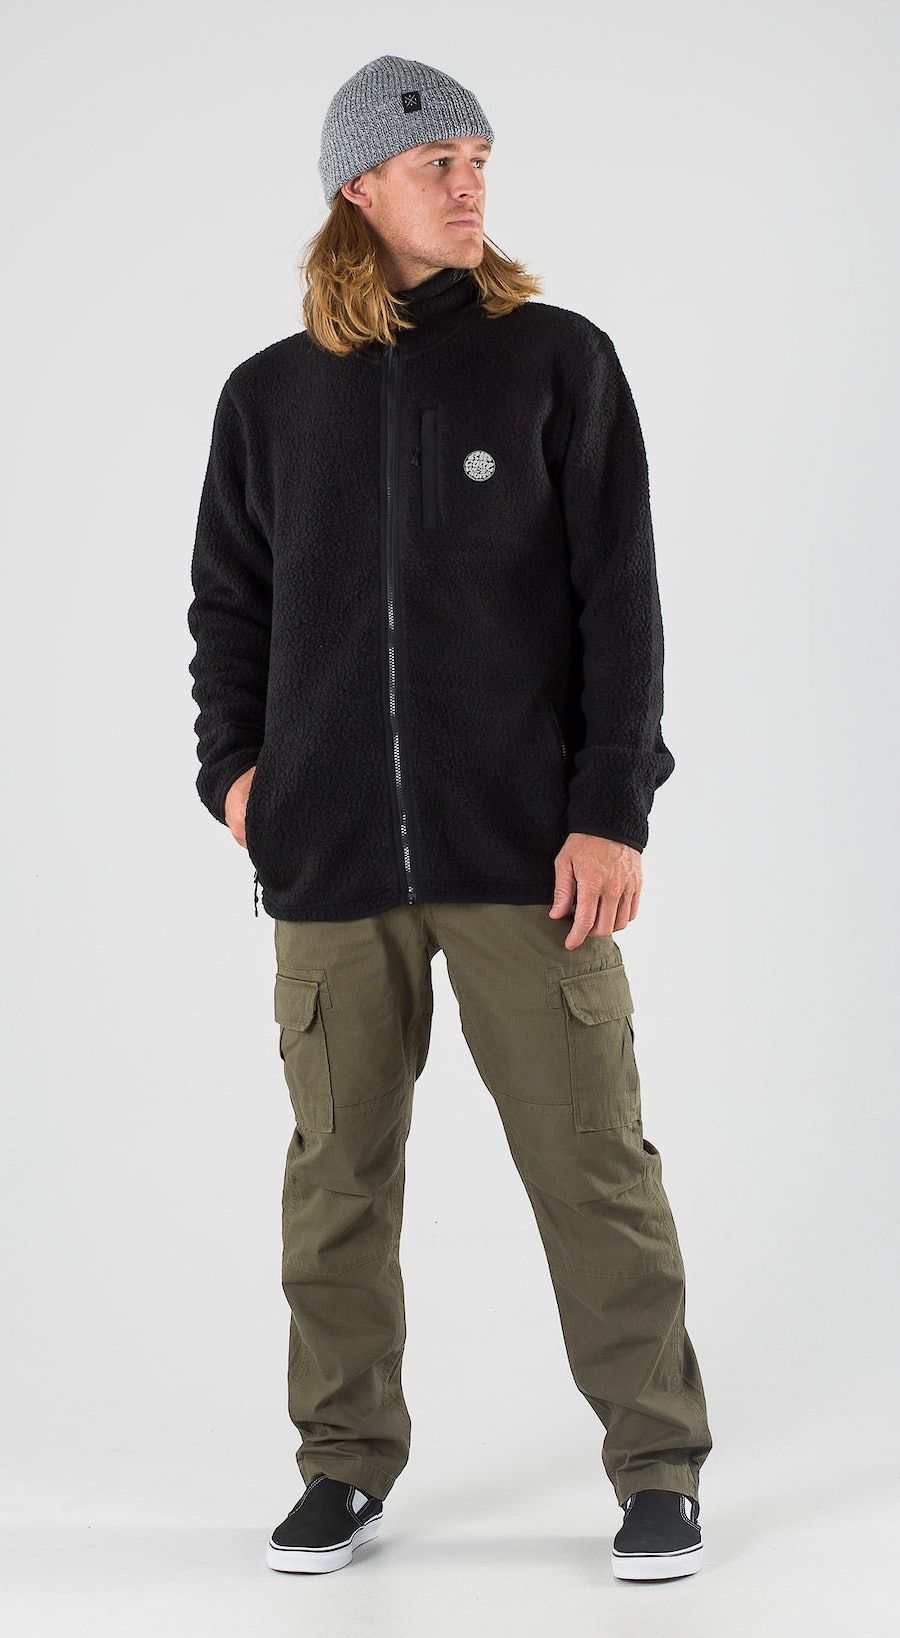 Rip Curl Fireside Zipper Crew Black Outfit Multi